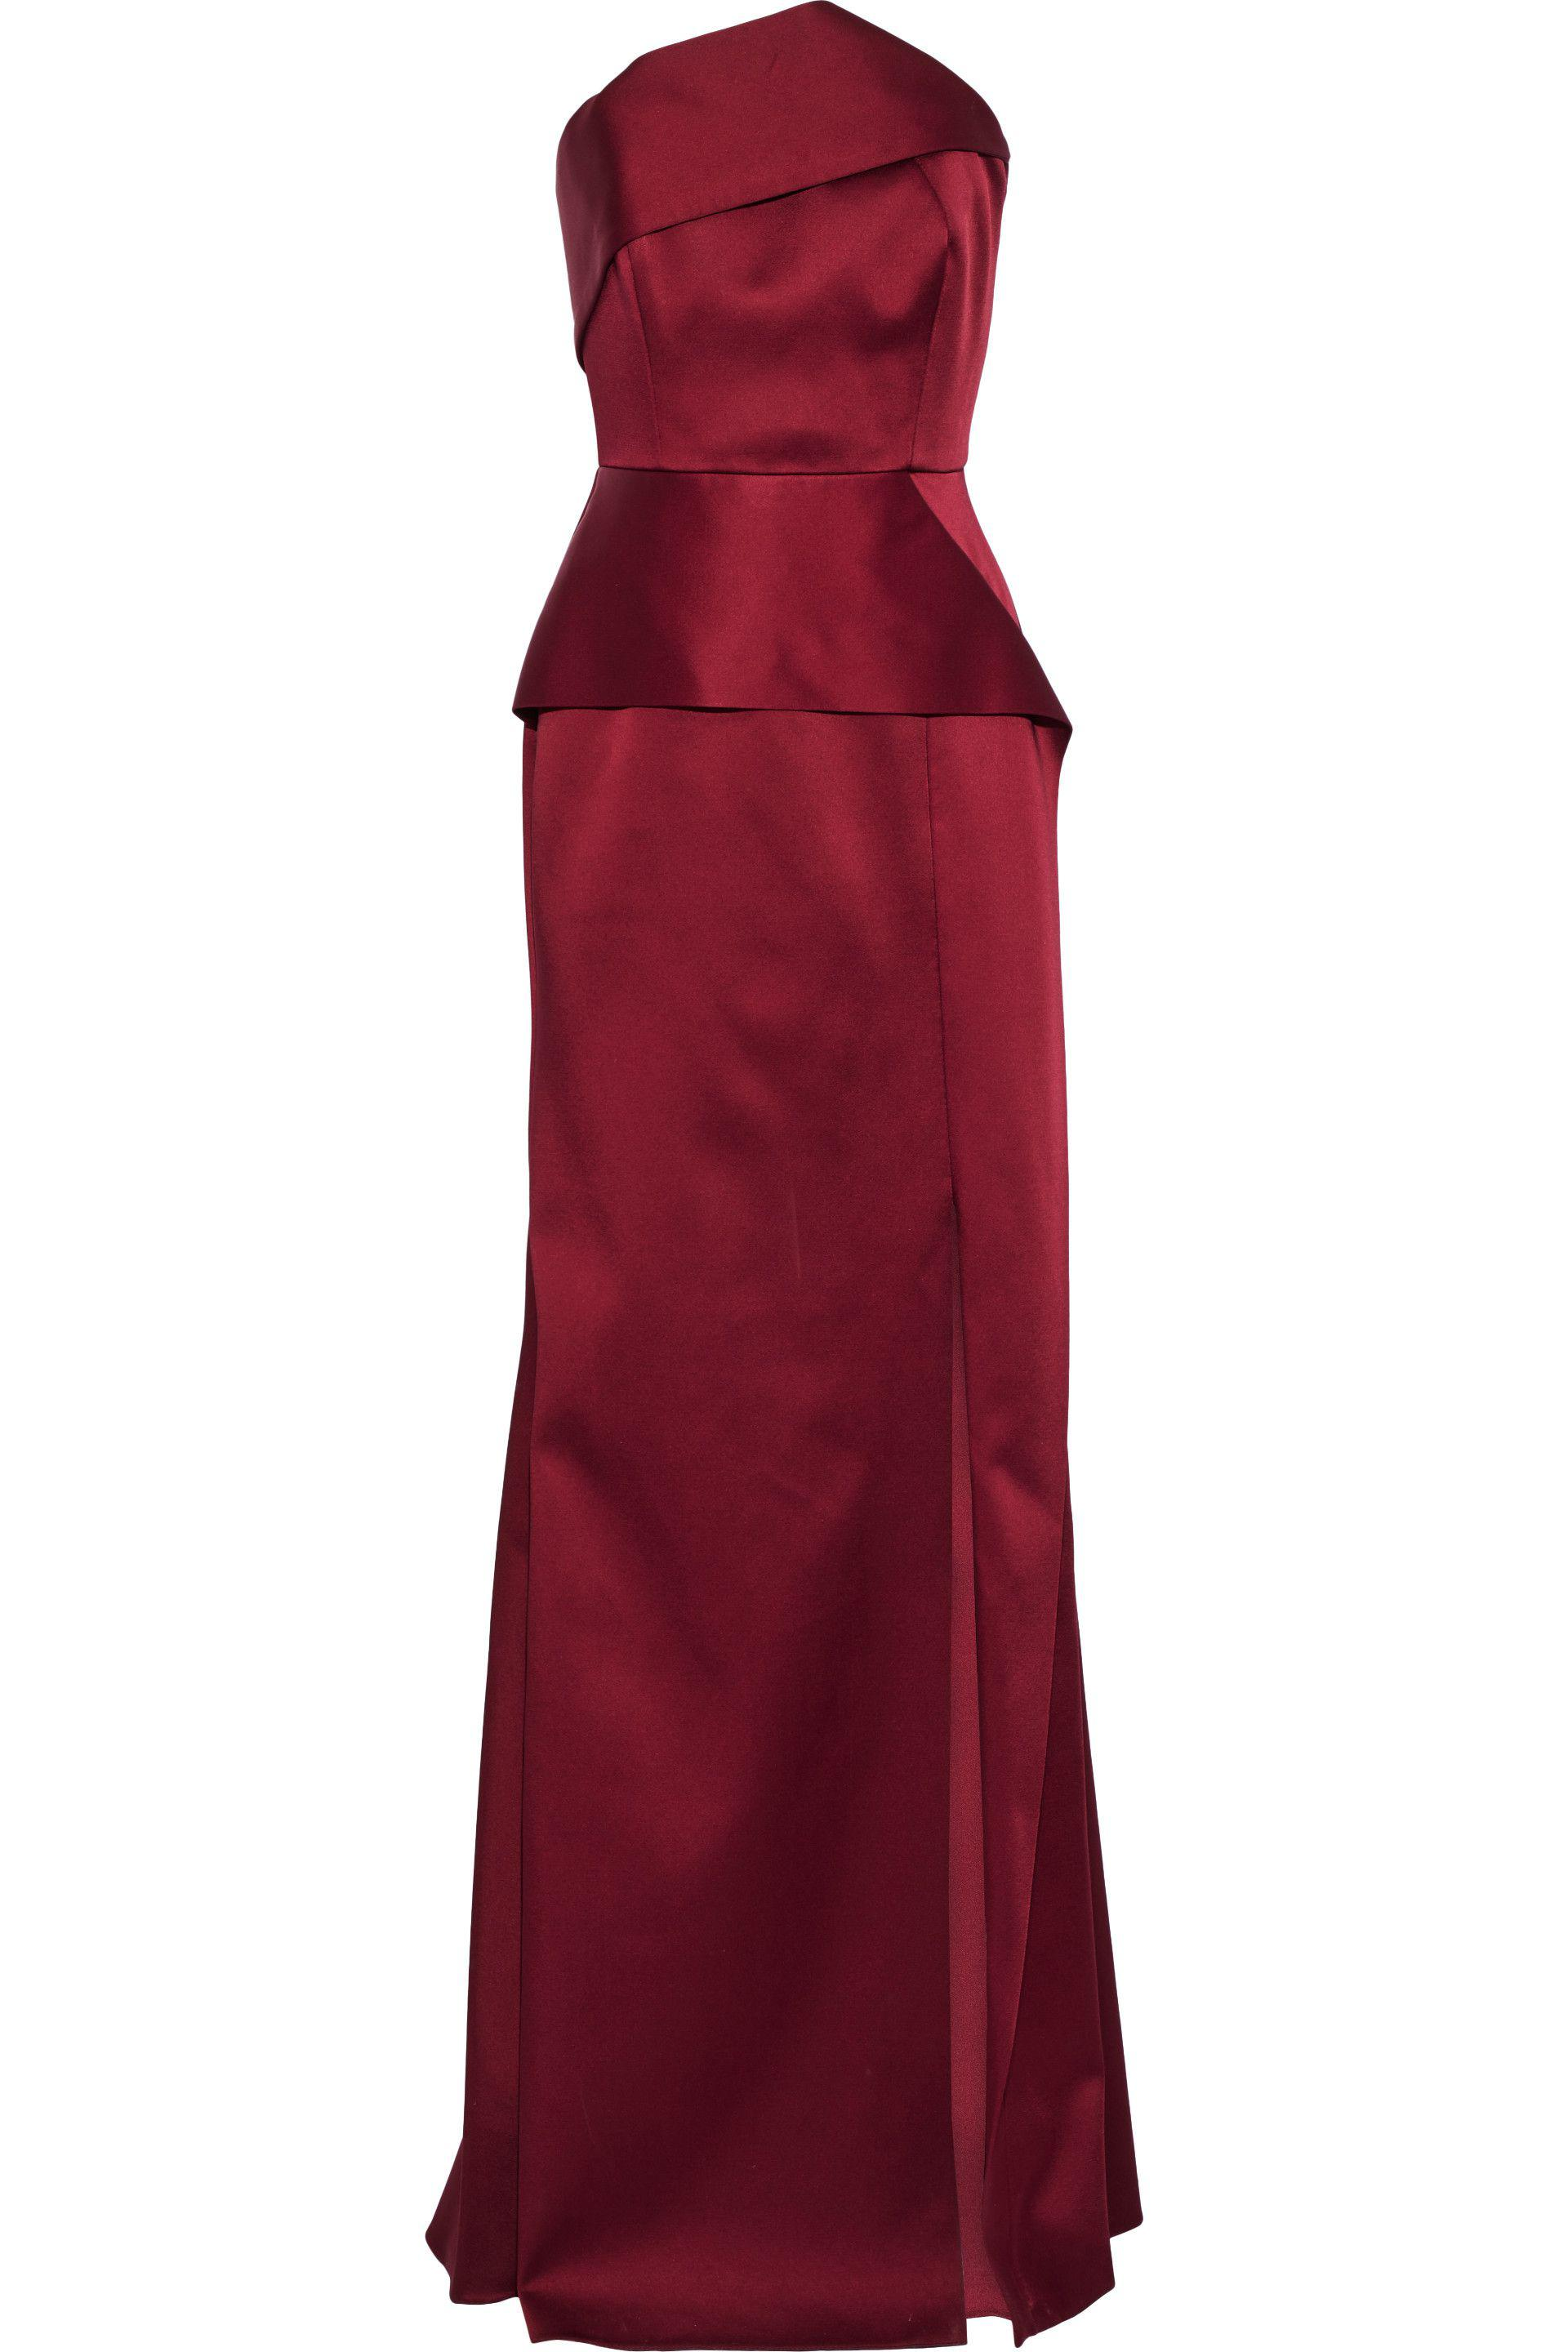 Roland Mouret Woman Addover Strapless Two-tone Satin-crepe Gown Claret Size 14 Roland Mouret Cheap Discount Authentic Outlet Low Shipping Fee Fake L7UlY2